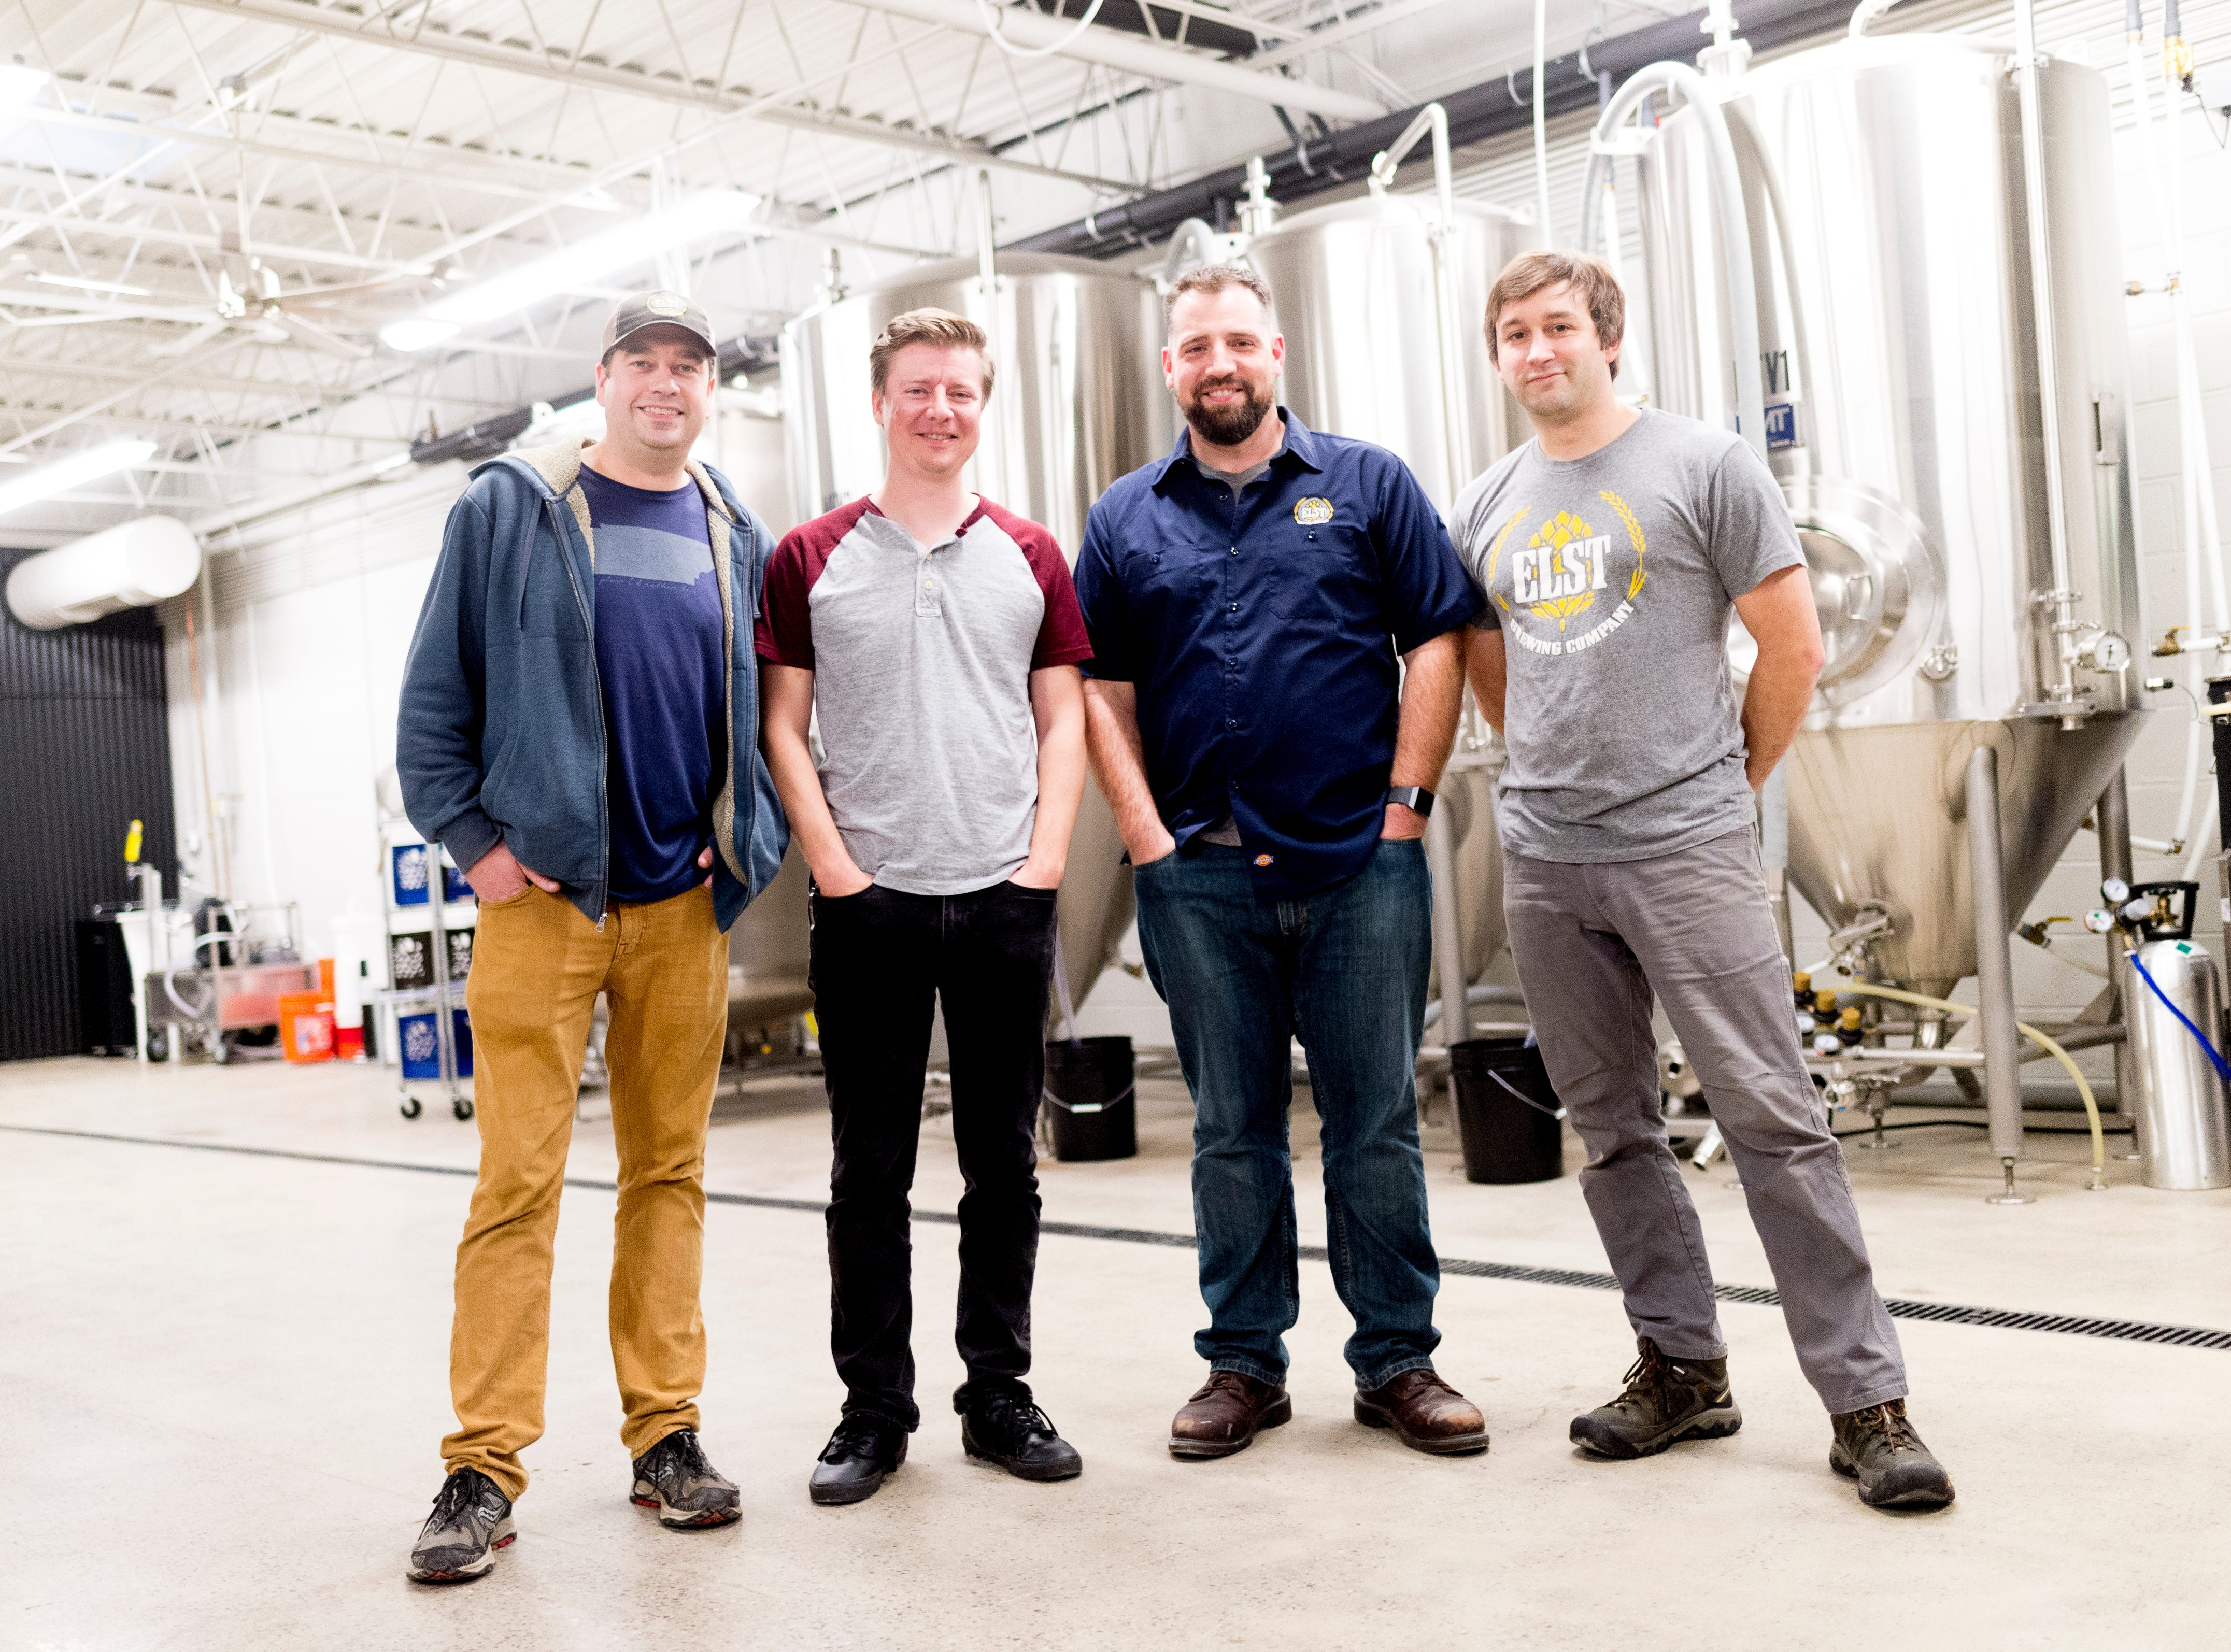 From left, owners Shane Todd, Chris Hall, Dan Leonard and Chris Sexton pose for a photo in front of the fermentation and brite tanks at Elst Brewing Company on 2417 N Central St. in Knoxville, Tennessee on Thursday, November 1, 2018. Elst plans to open its door beginning next year.